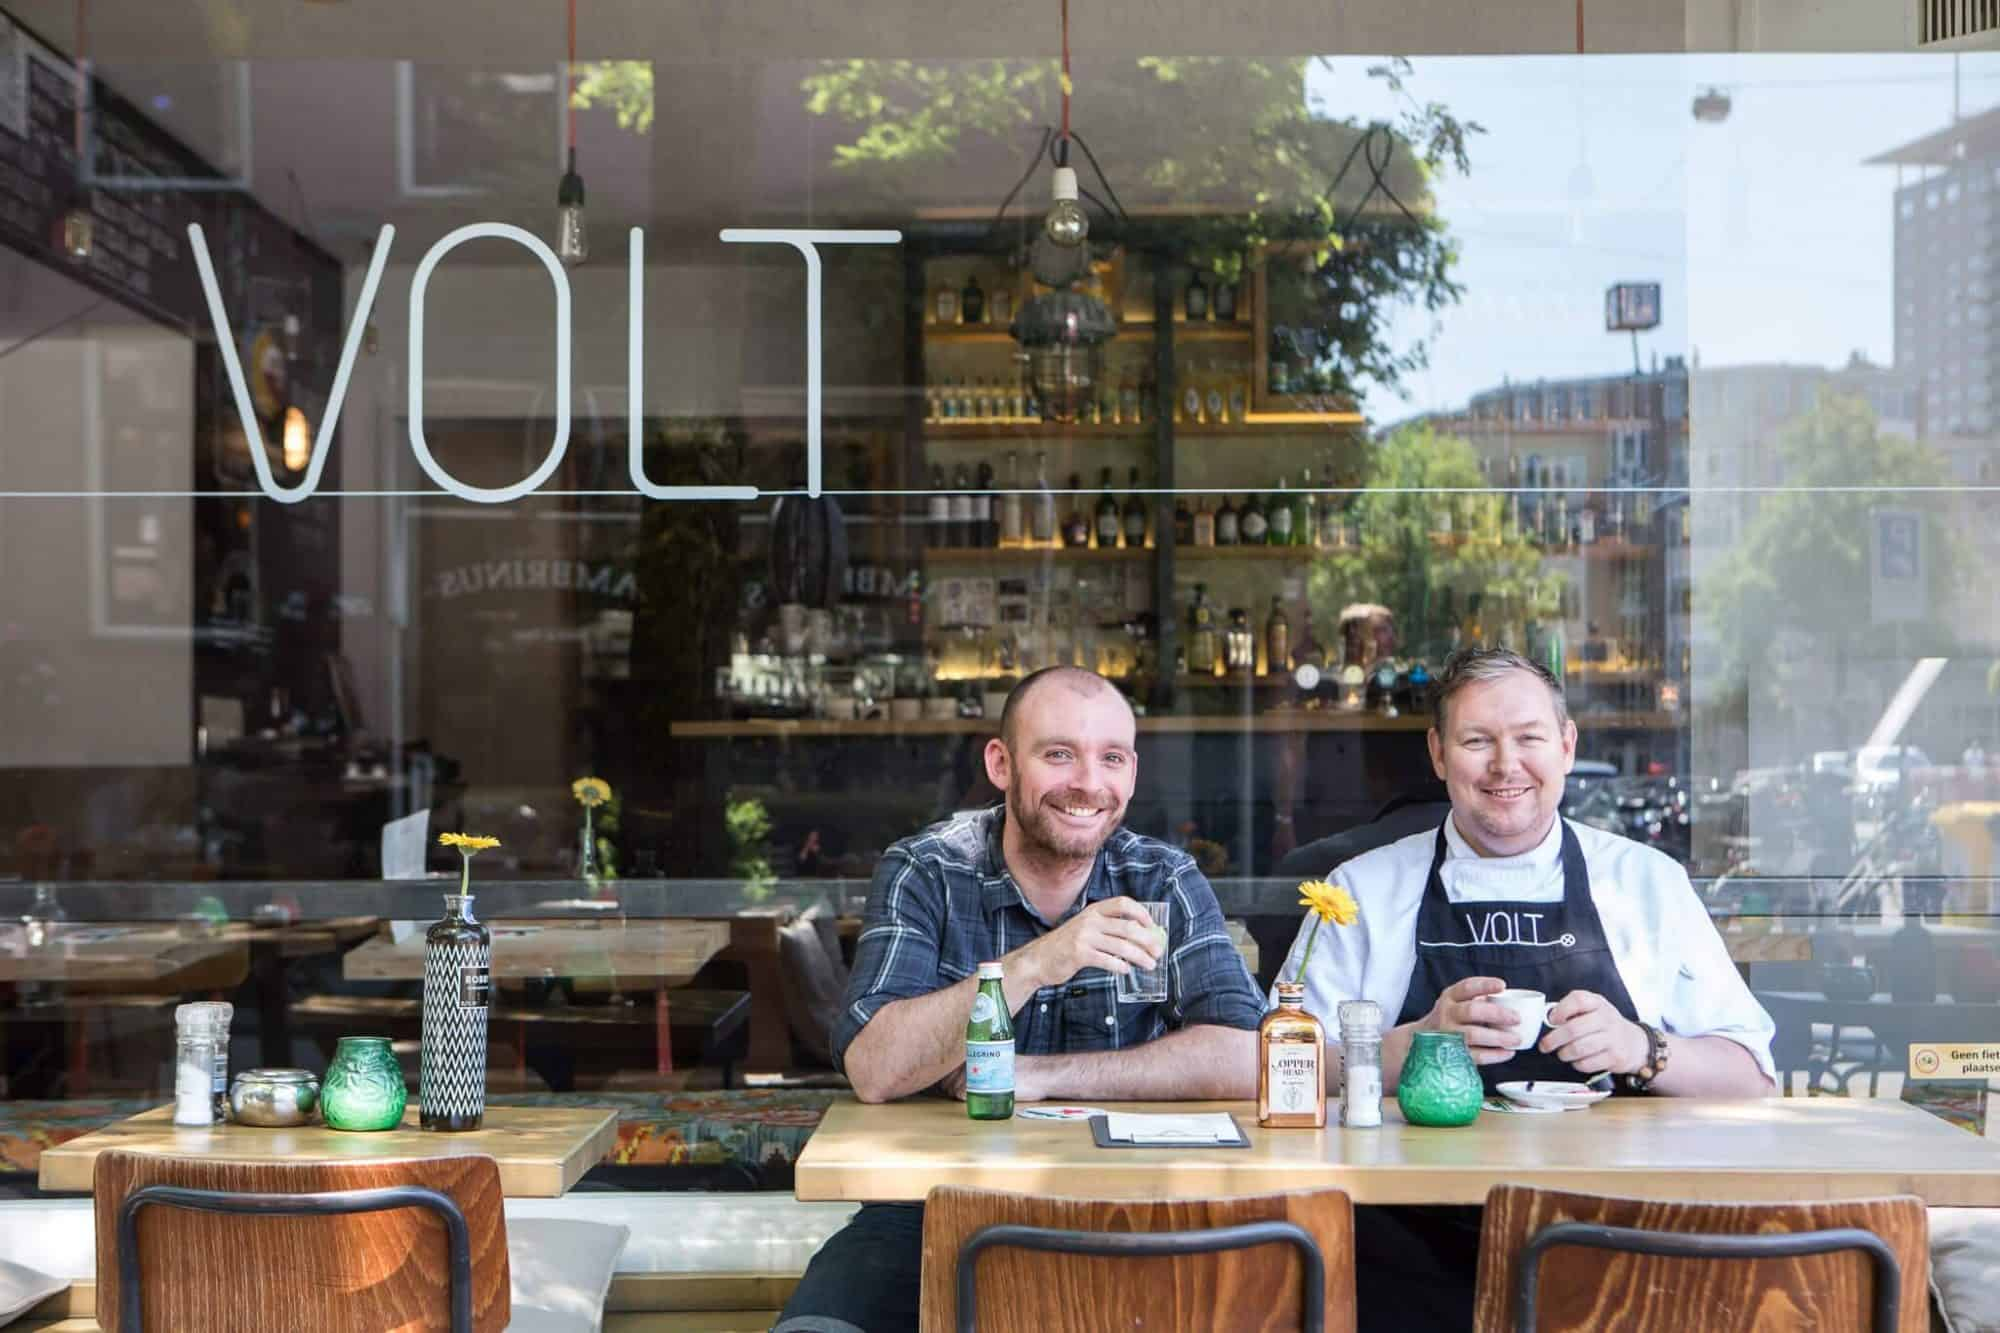 Volt Amsterdam Private Label Distilling